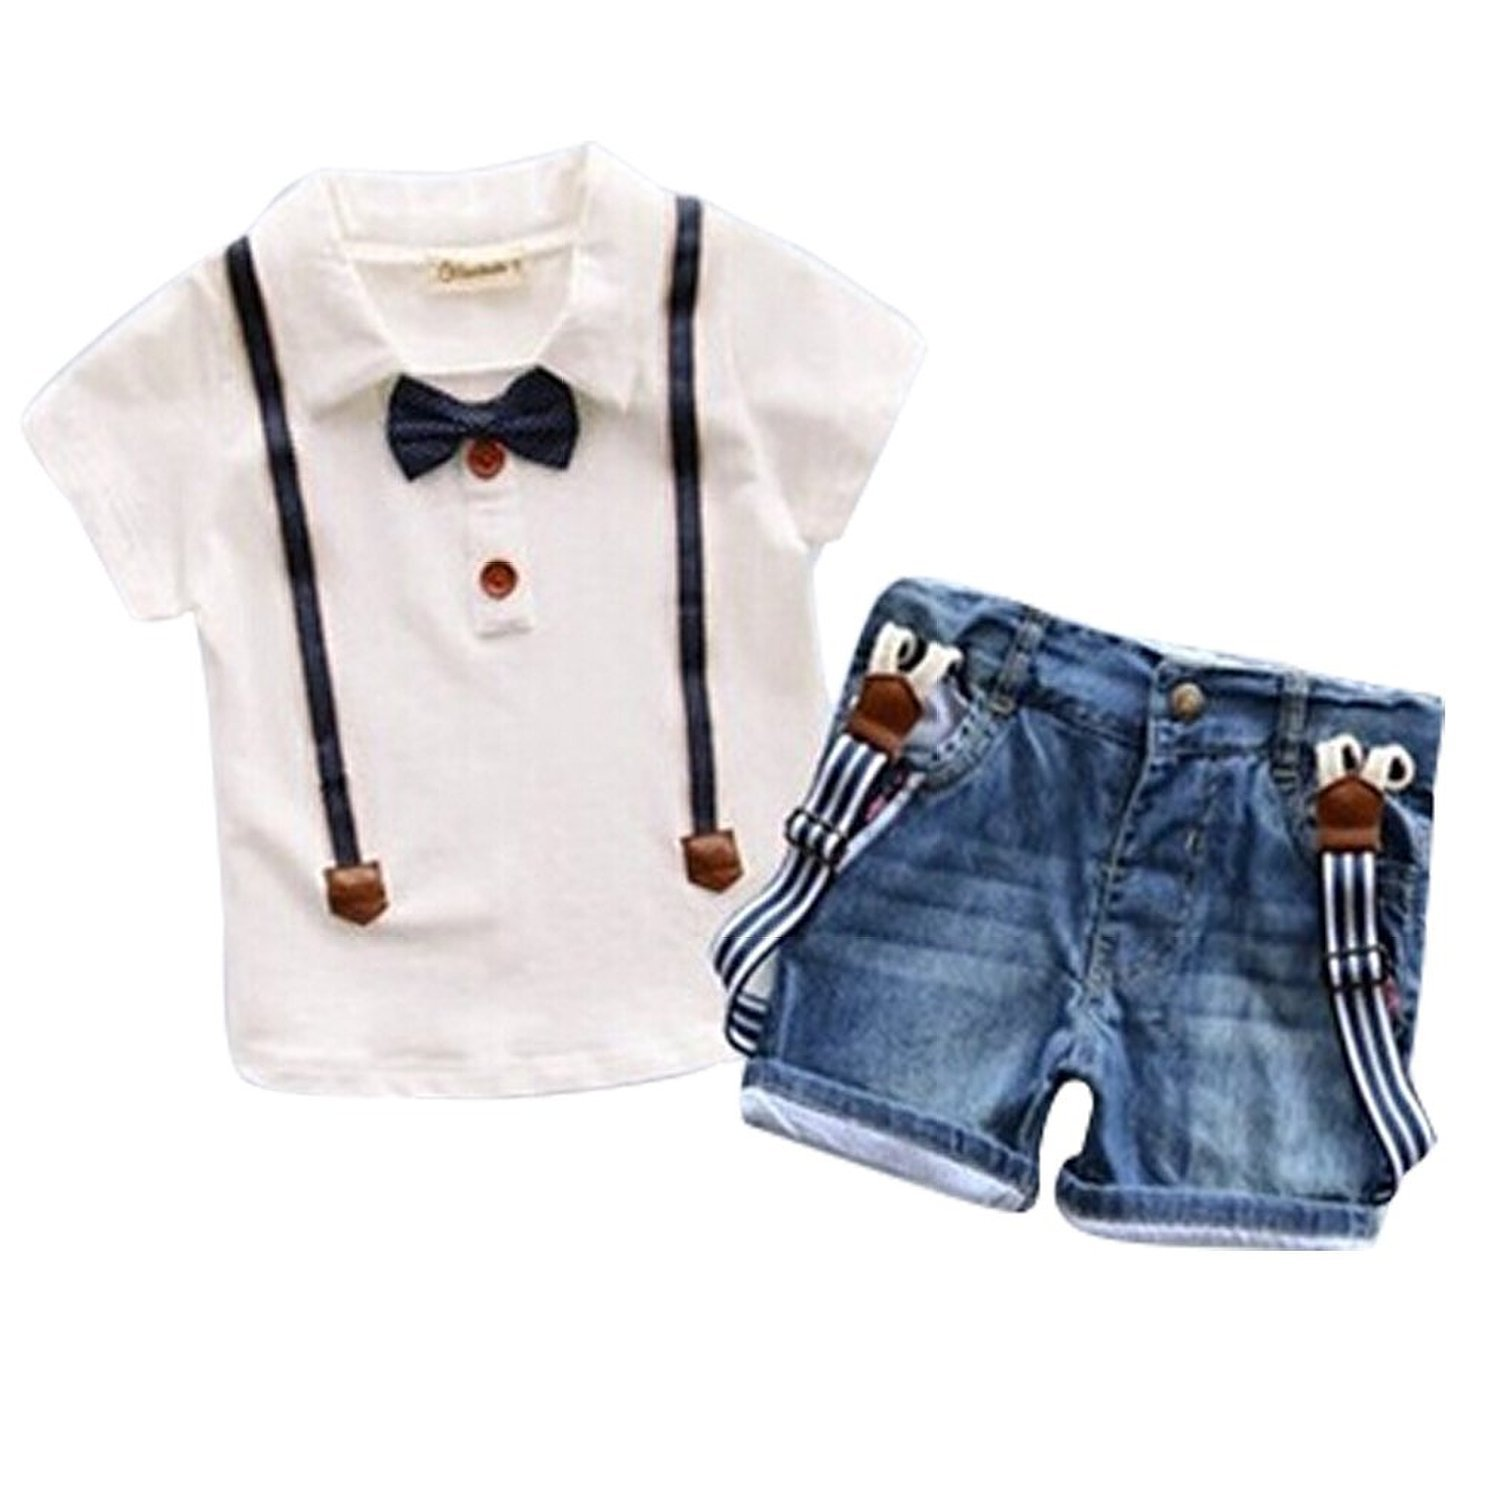 e9b8263da Short Sleeve Shirt With Bow Tie And Suspenders